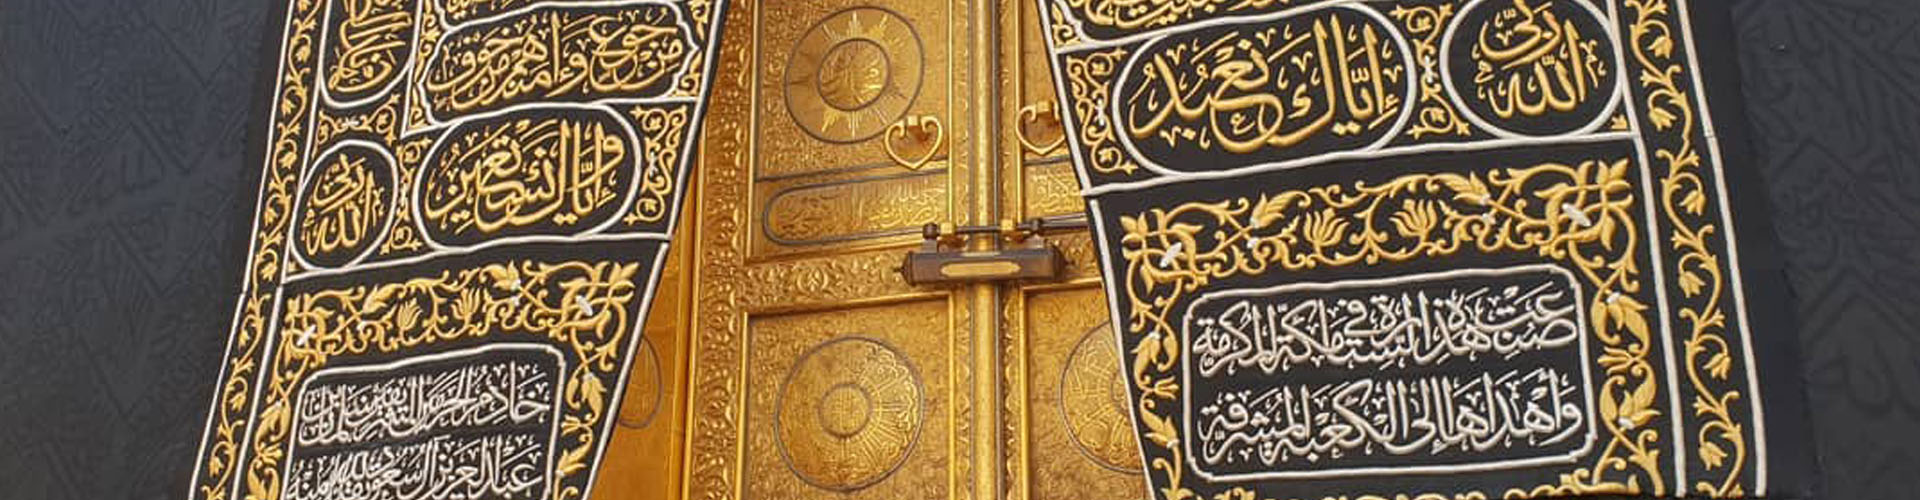 Doors of Jannah-Gateways to Eternal Bliss